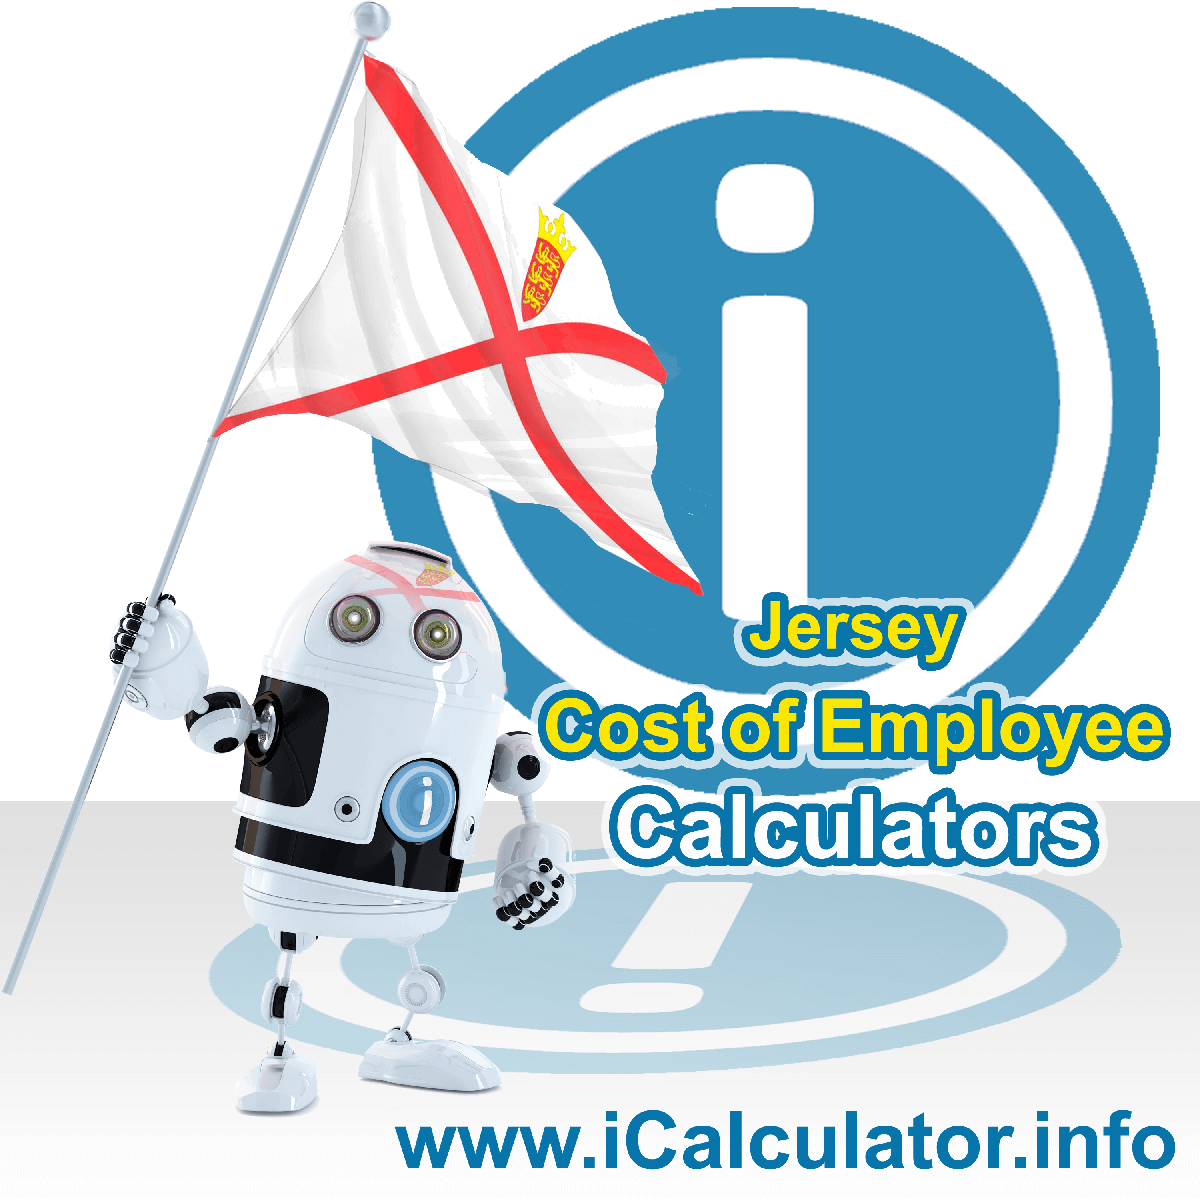 True Cost of an Employee in Jersey Calculator. This image shows a new employer in Jersey looking hiring a new employee, they calculate the cost of hiring an employee in Jersey using the True Cost of an Employee in Jersey calculator to understand their employment cost in Jersey in 2021